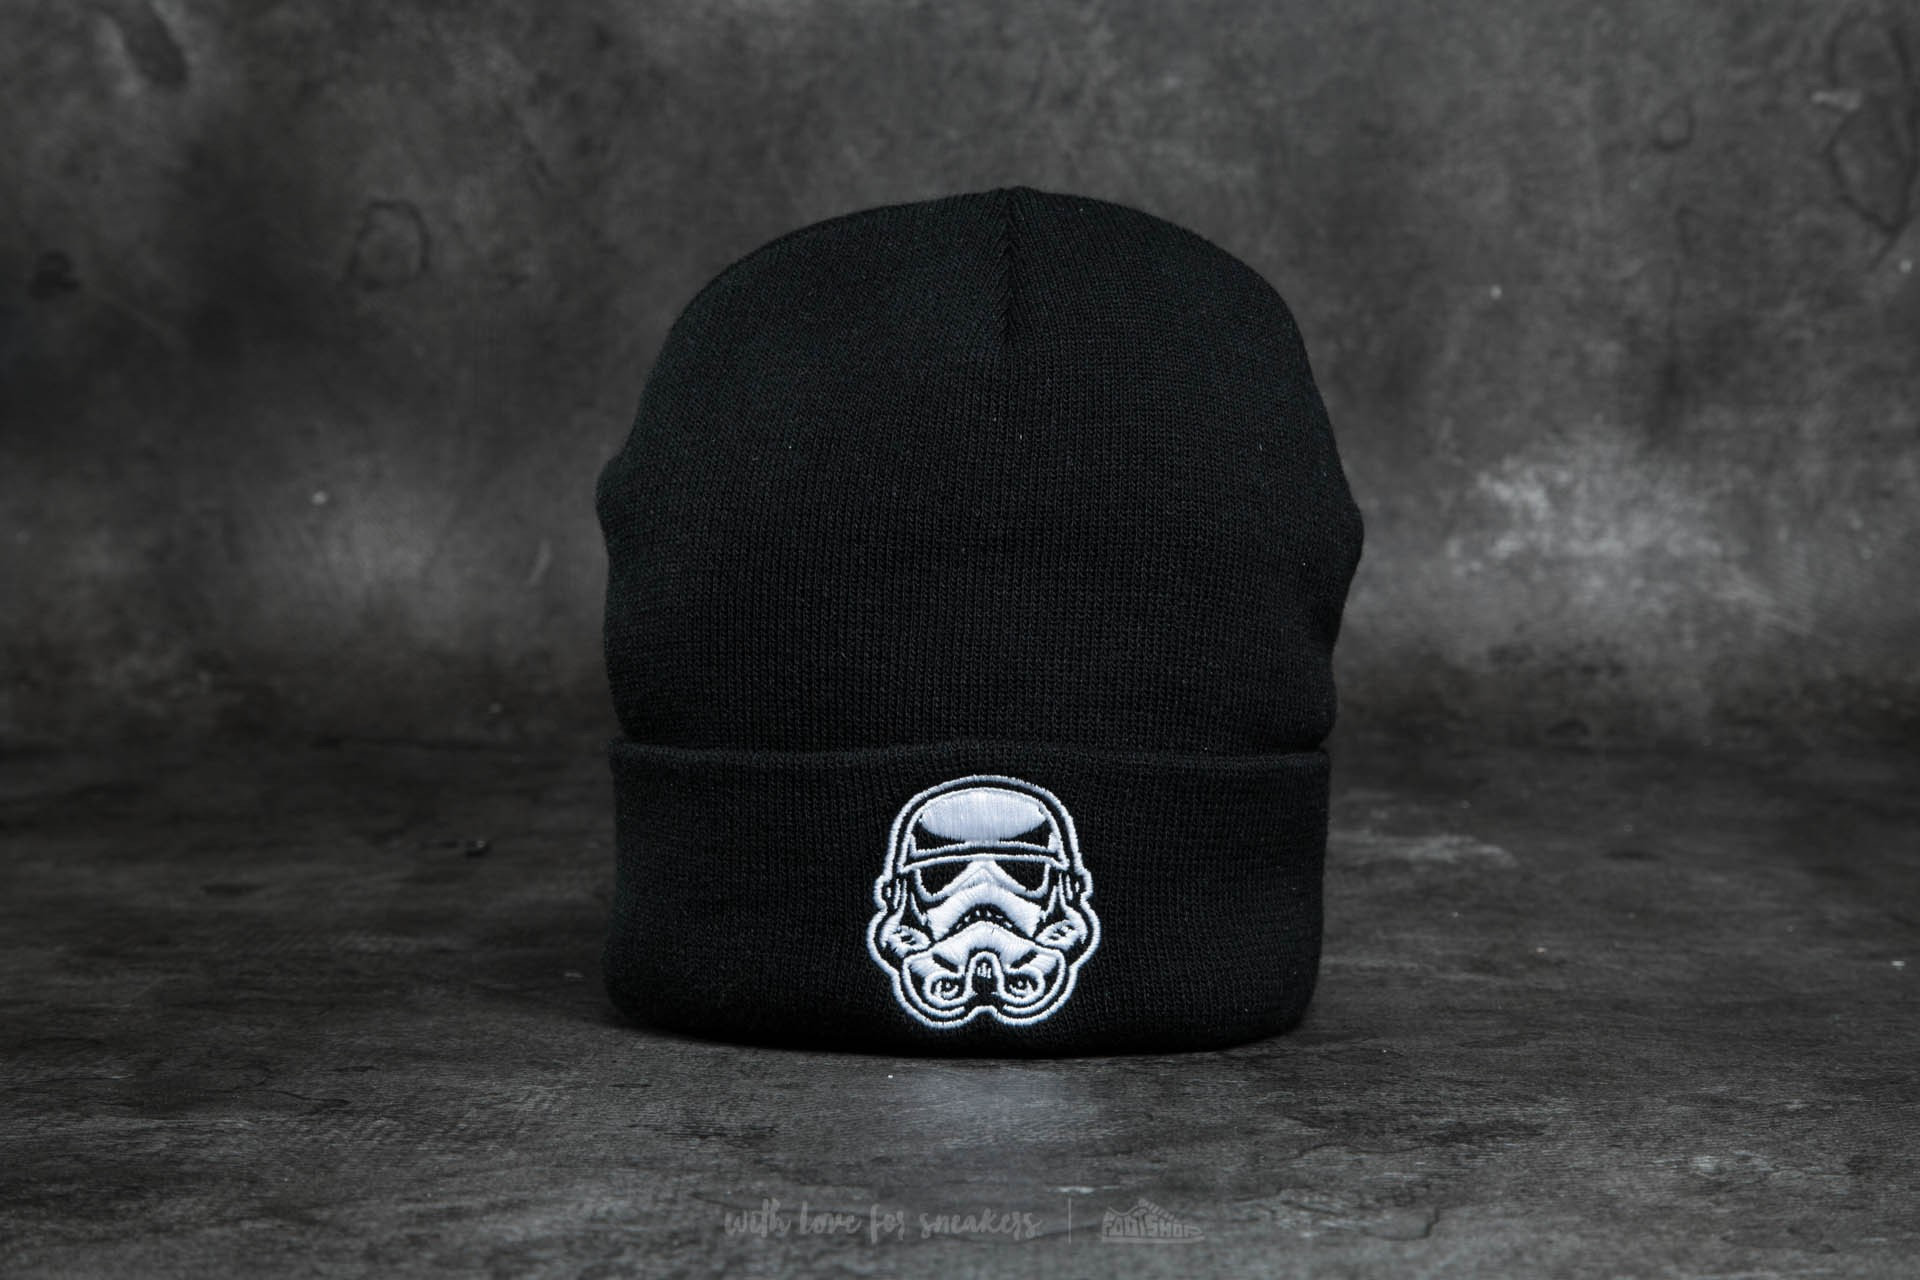 Dedicated x Star Wars Trooper Head Beanie Black